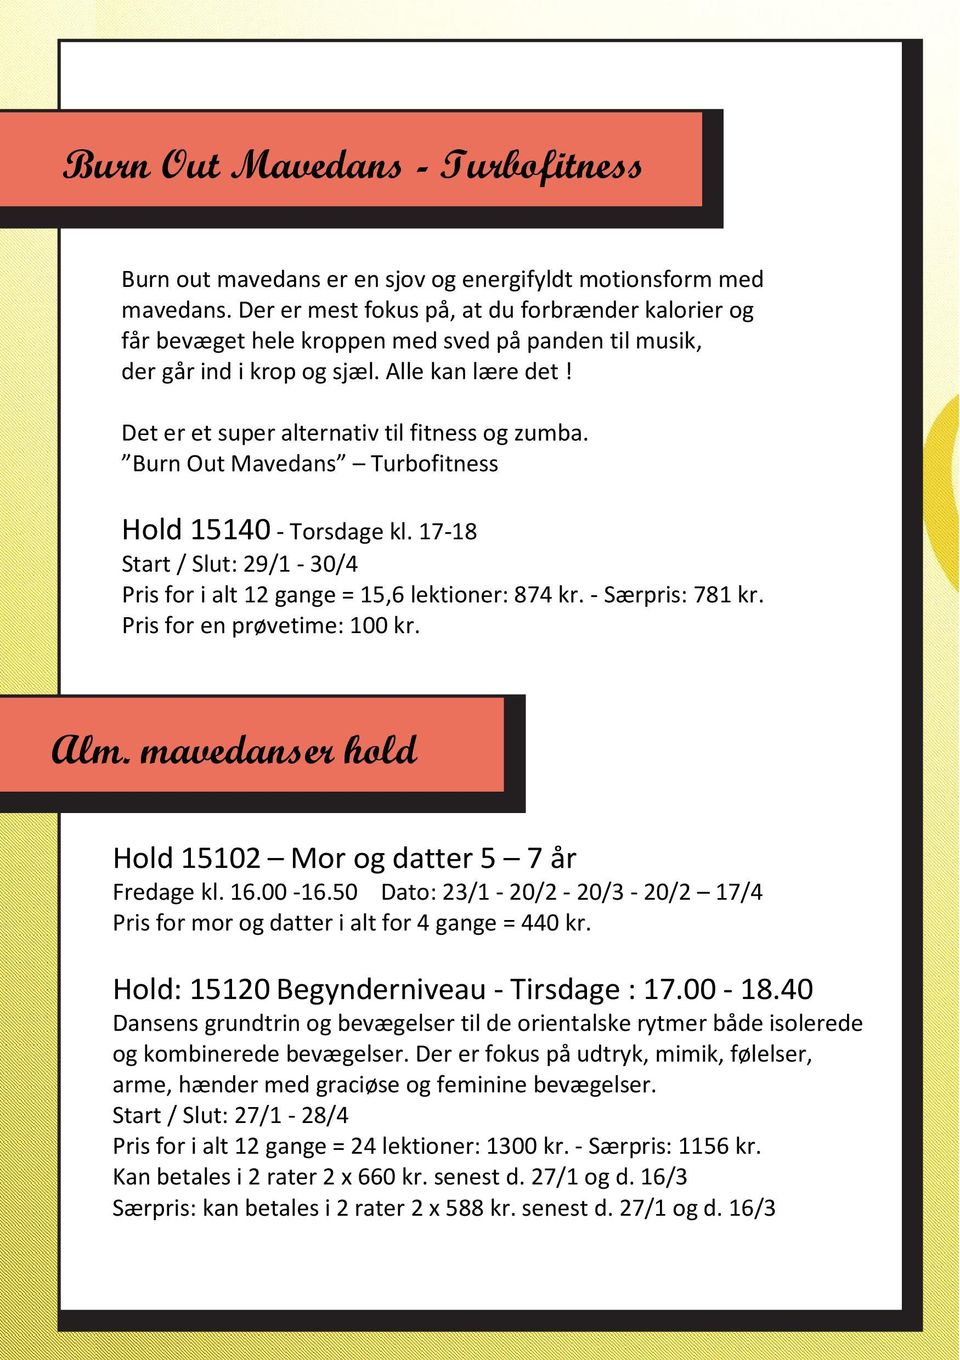 Det er et super alternativ til fitness og zumba. Burn Out Mavedans Turbofitness Hold 15140 - Torsdage kl. 17-18 Start / Slut: 29/1-30/4 Pris for i alt 12 gange = 15,6 lektioner: 874 kr.